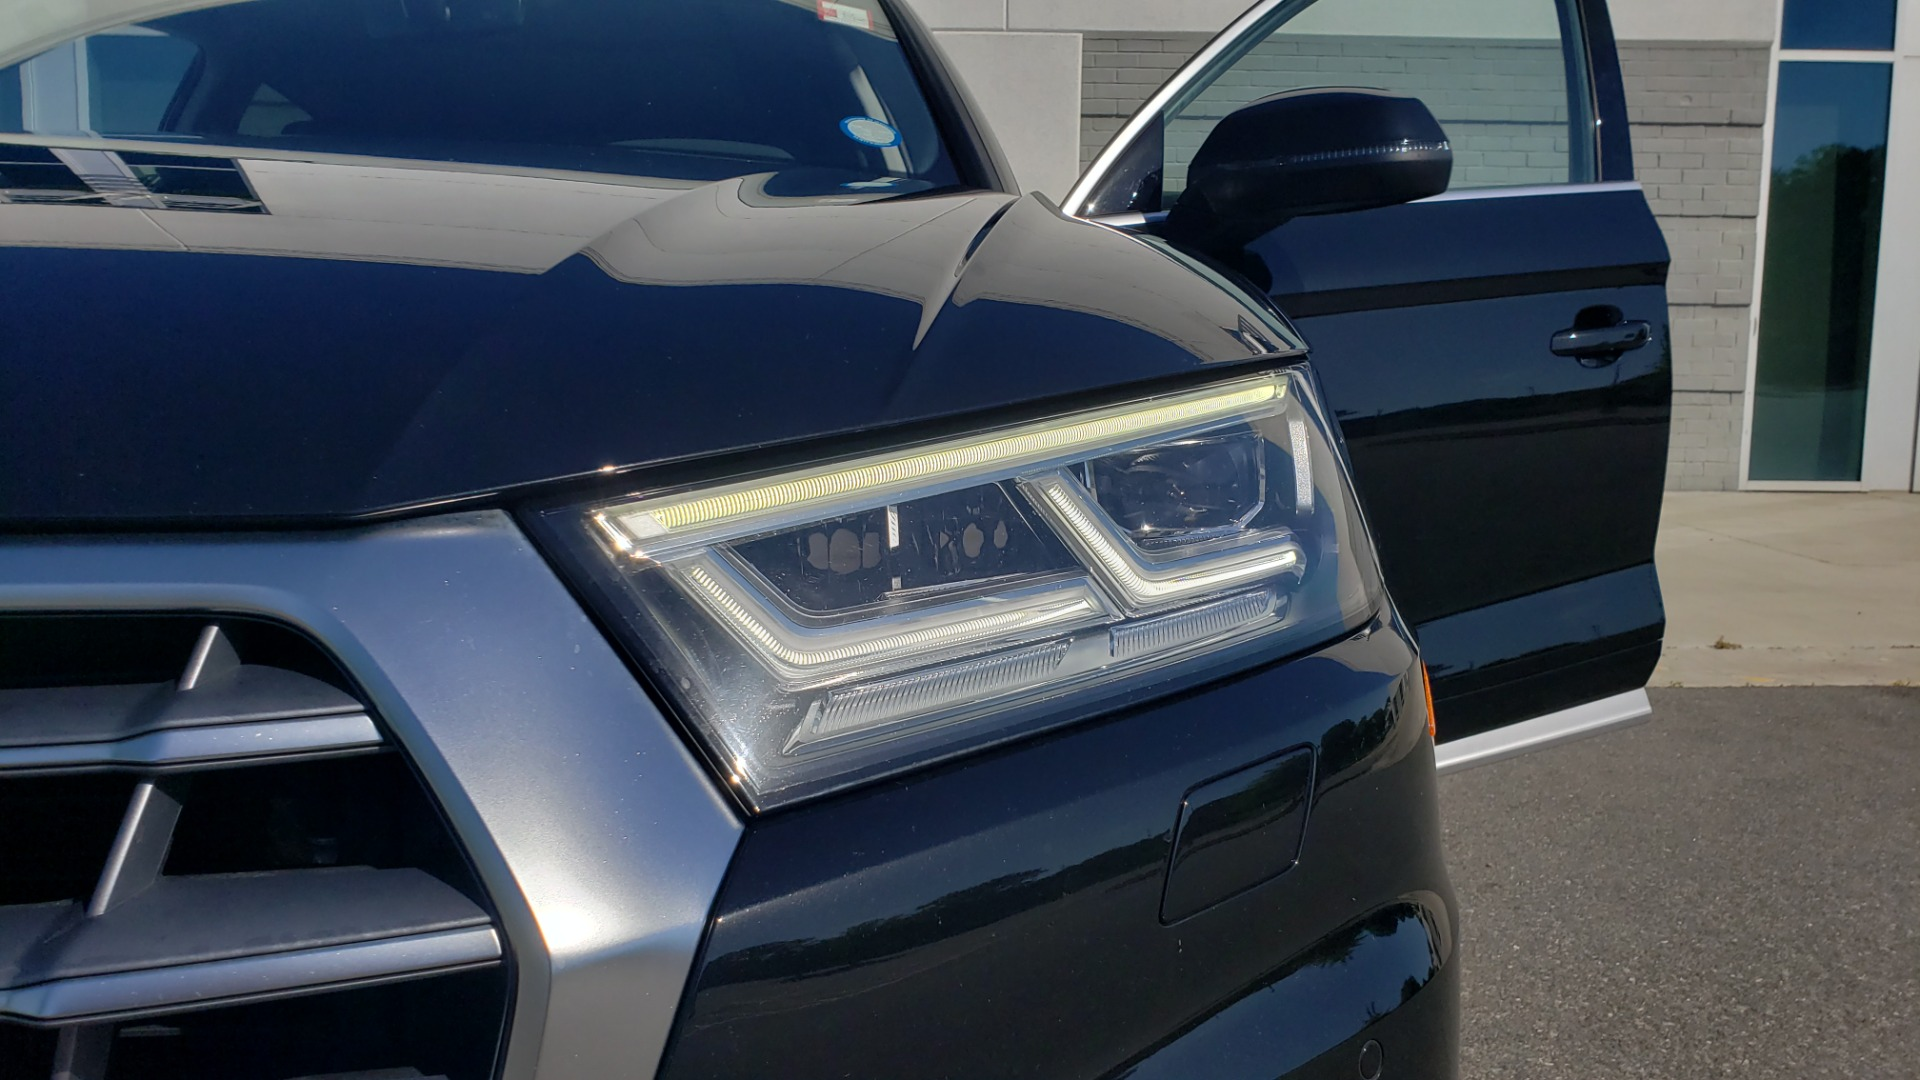 Used 2018 Audi Q5 PREMIUM PLUS / NAV / B&O SND / CLD WTHR / SUNROOF / REARVIEW for sale Sold at Formula Imports in Charlotte NC 28227 23